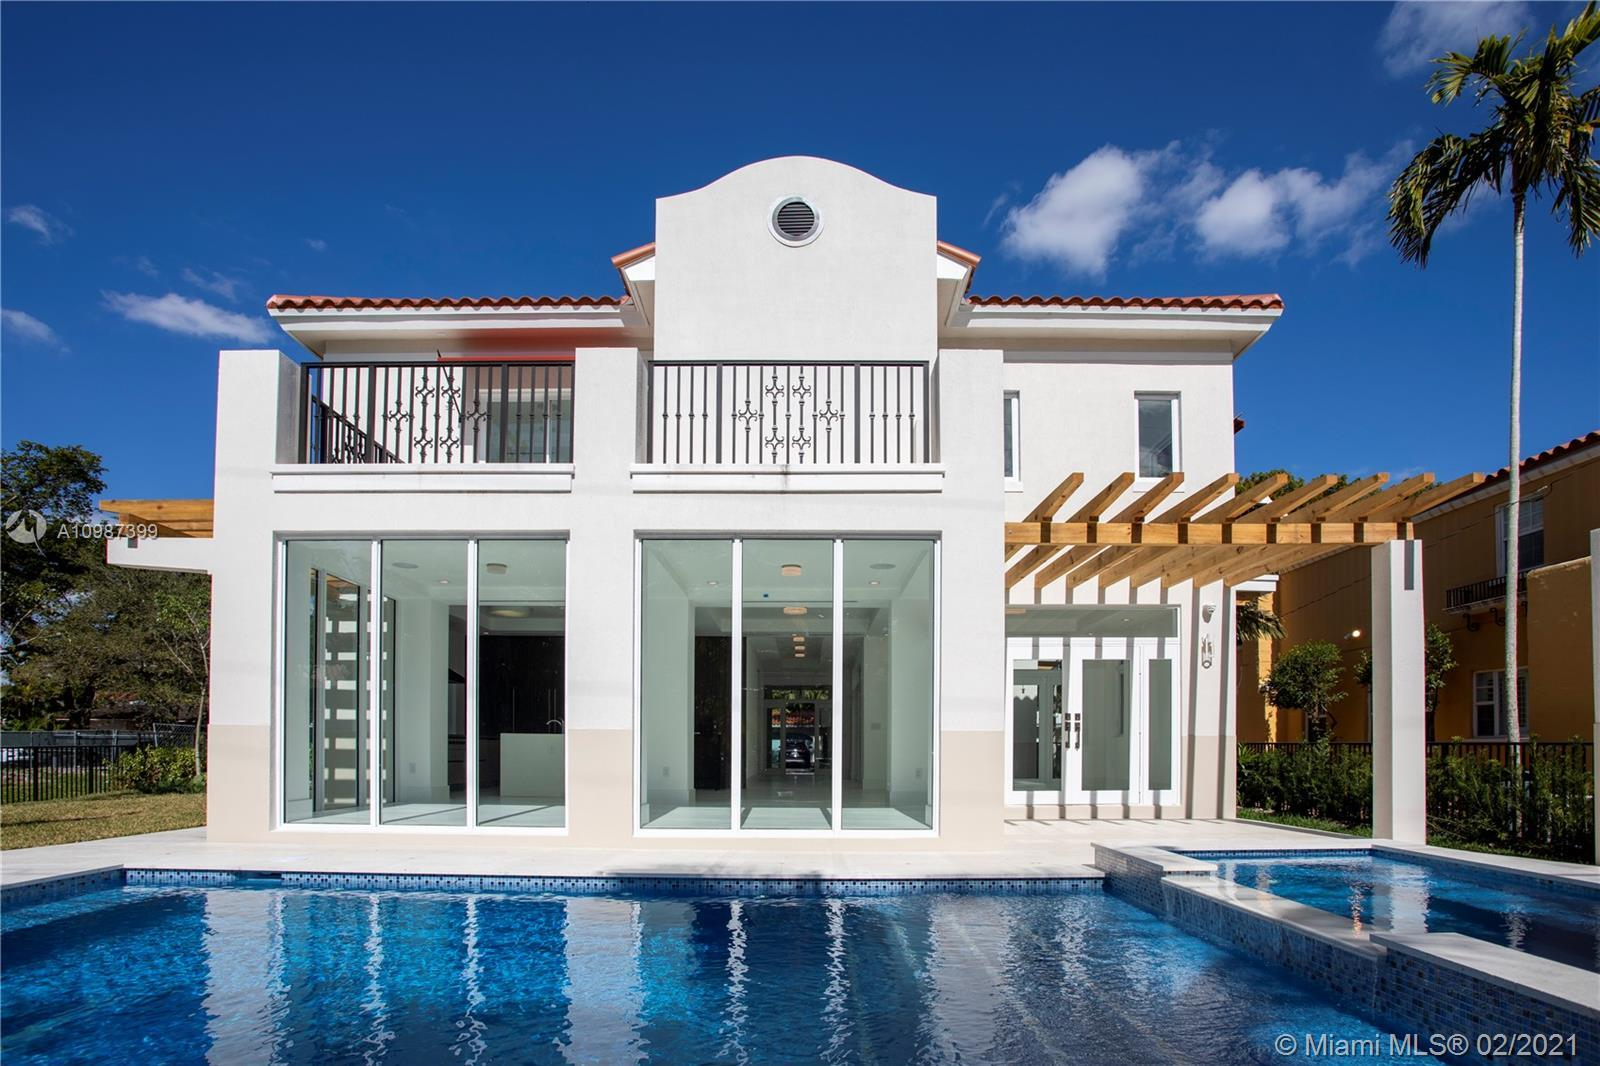 Turn-key, two-story, new construction home walking distance to the heart of downtown Coral Gables. N